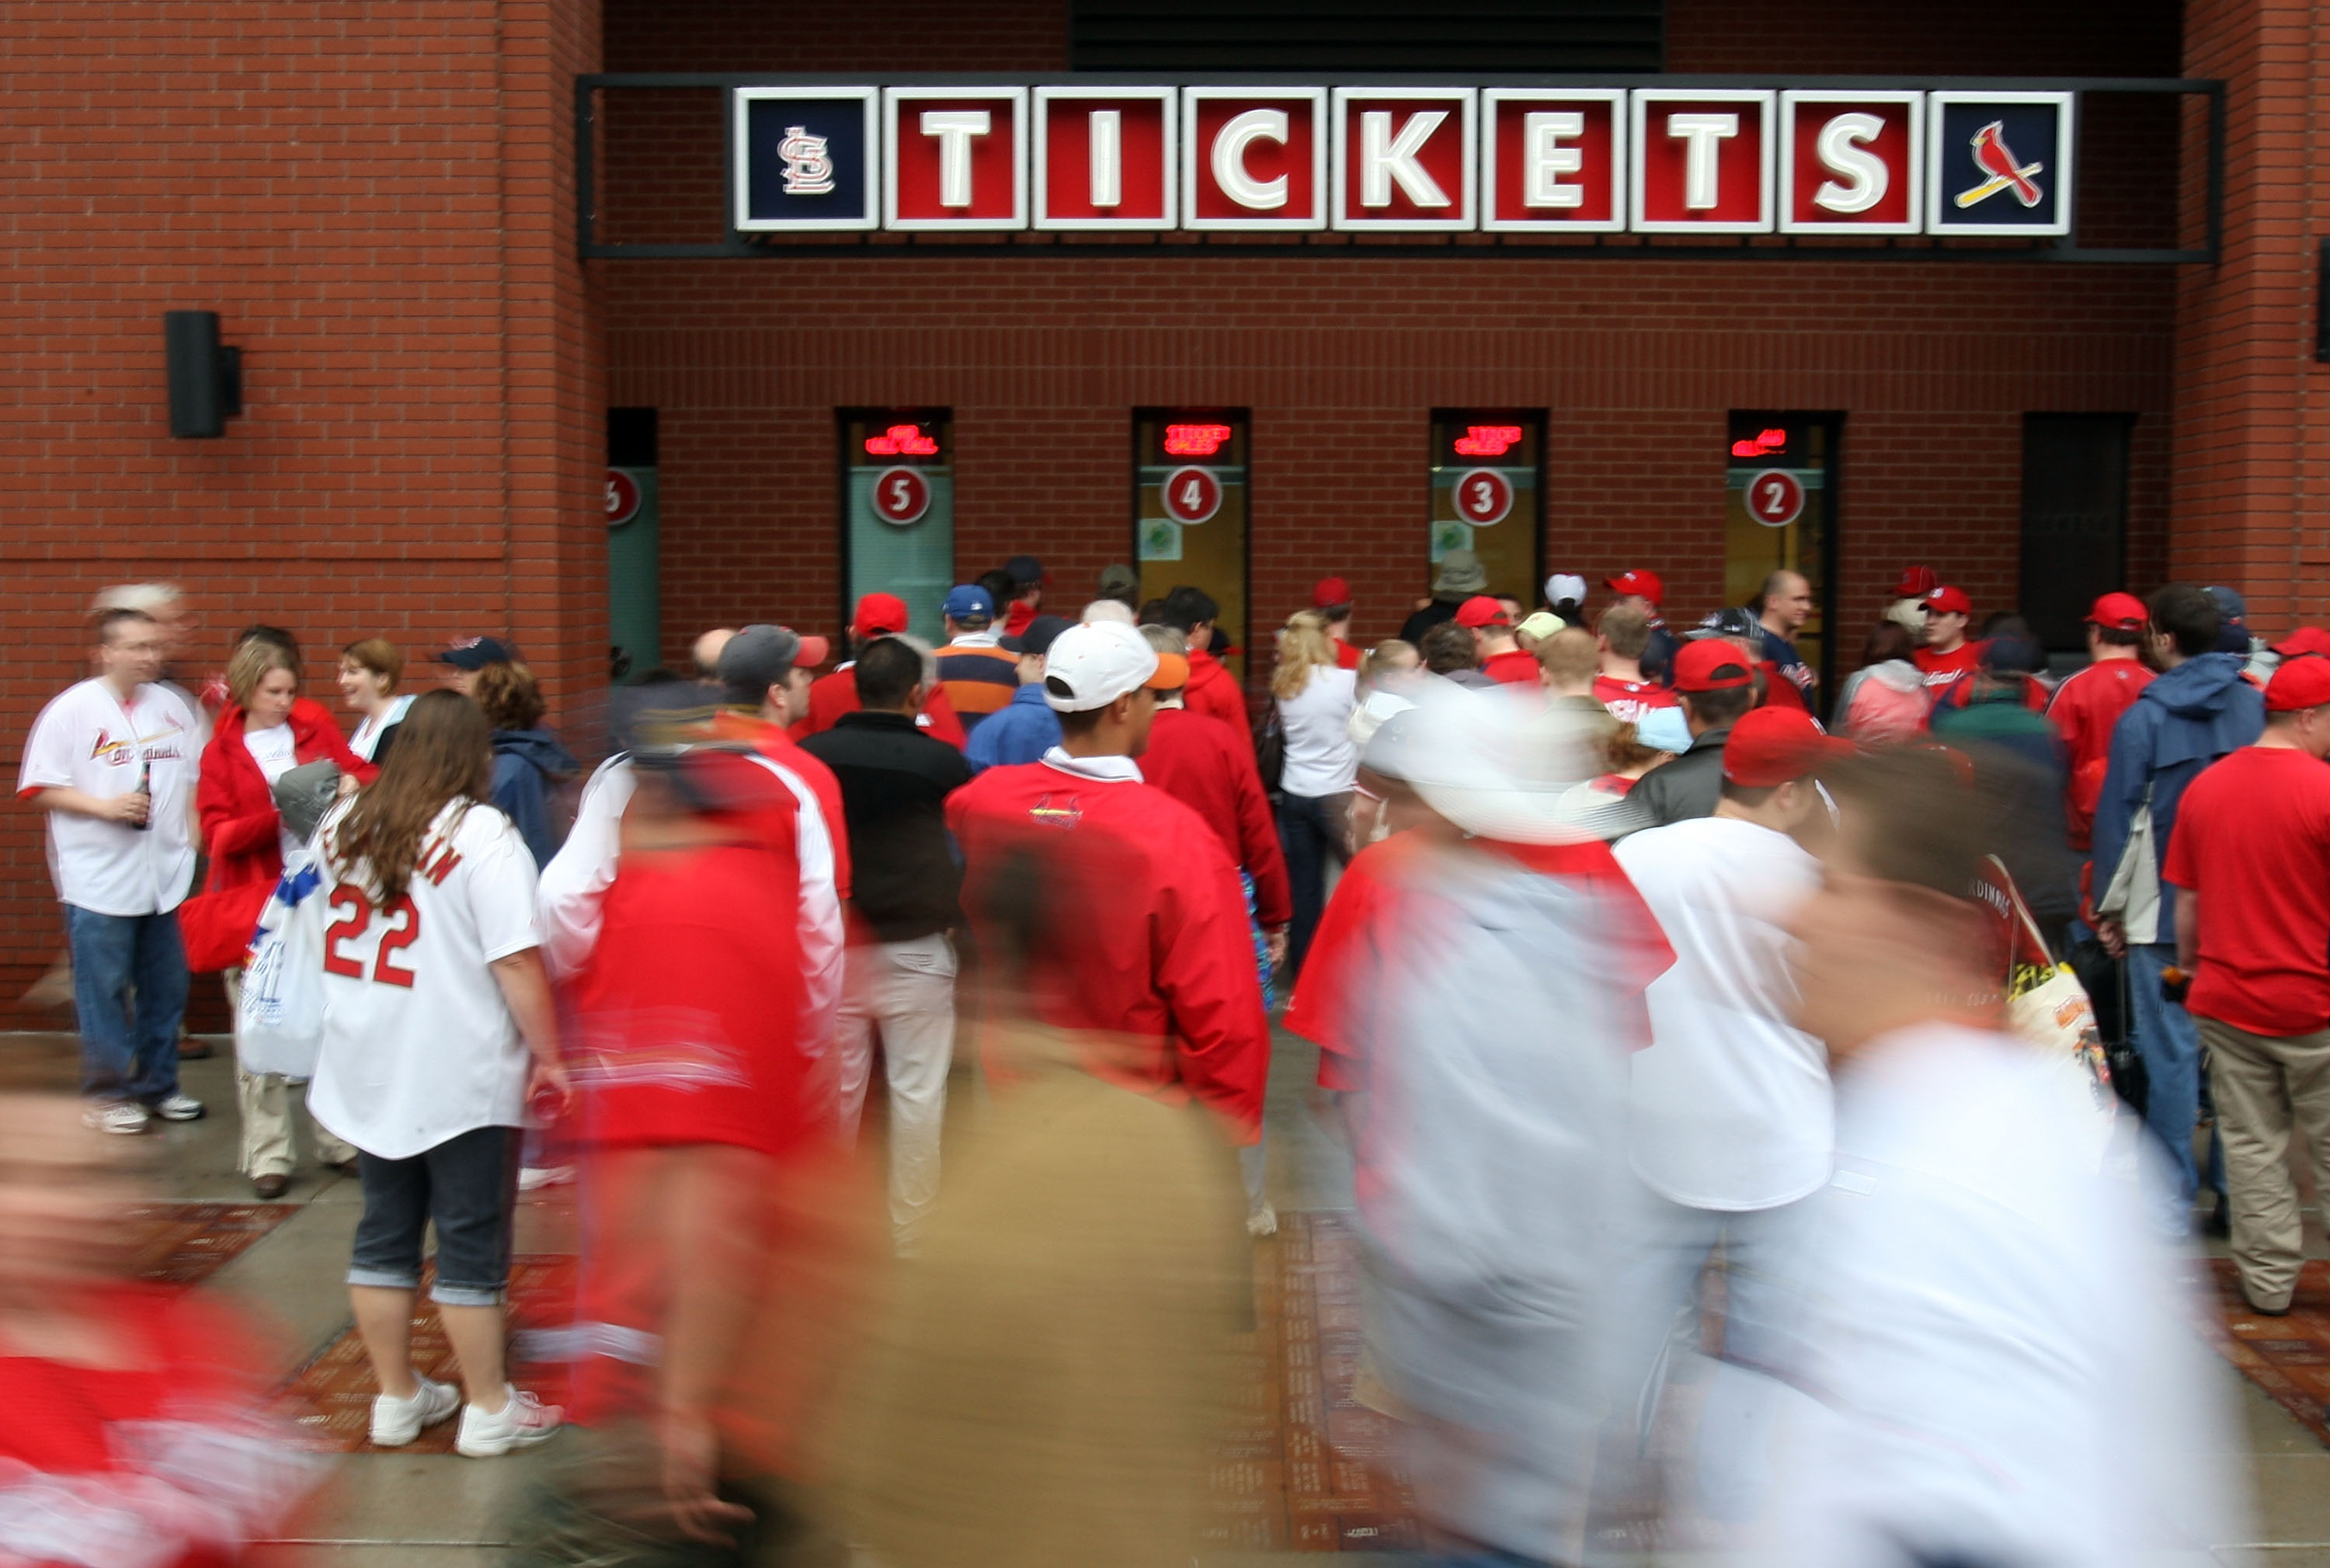 ST. LOUIS - MARCH 31:  Fans line up for tickets before the St. Louis Cardinals take on the Colorado Rockies on opening day at Busch Stadium March 31, 2008 in St. Louis, Missouri.  (Photo by Elsa/Getty Images)